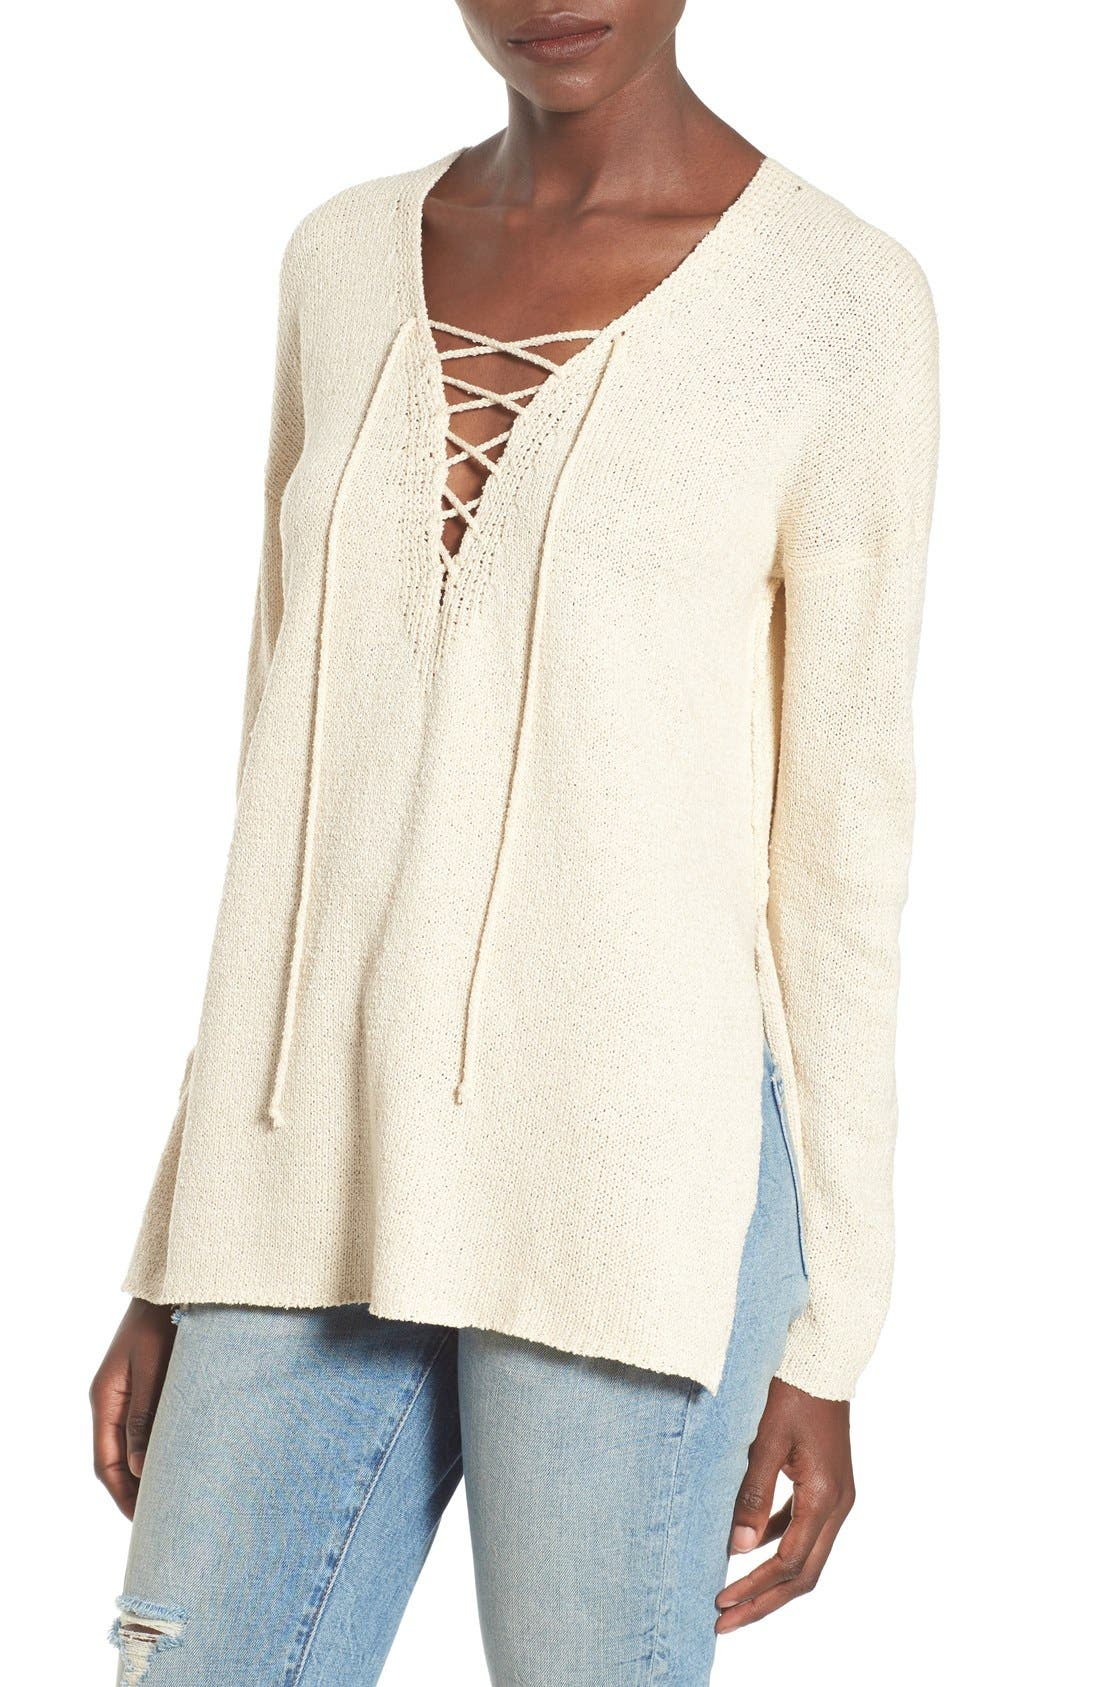 ASTR Lace-Up Sweater,                             Main thumbnail 1, color,                             Ivory